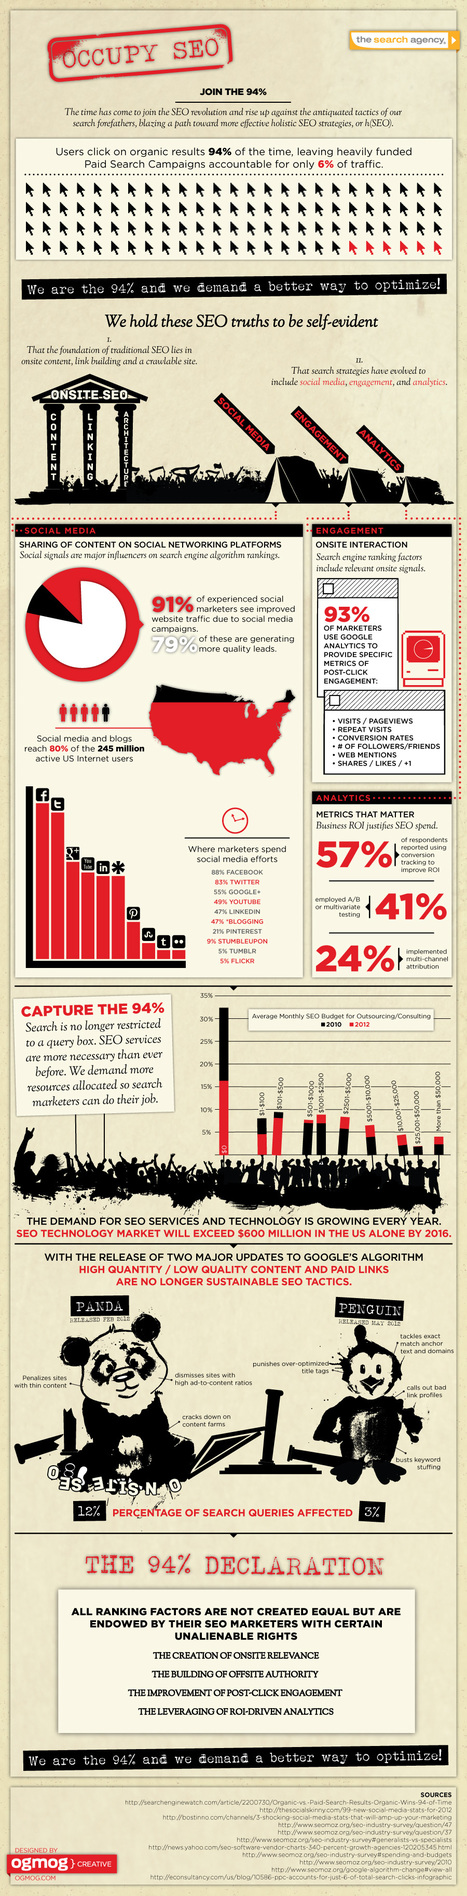 The State of SEO: How to Join the 94% (Infographic) | the thoughtful marketer | Scoop.it